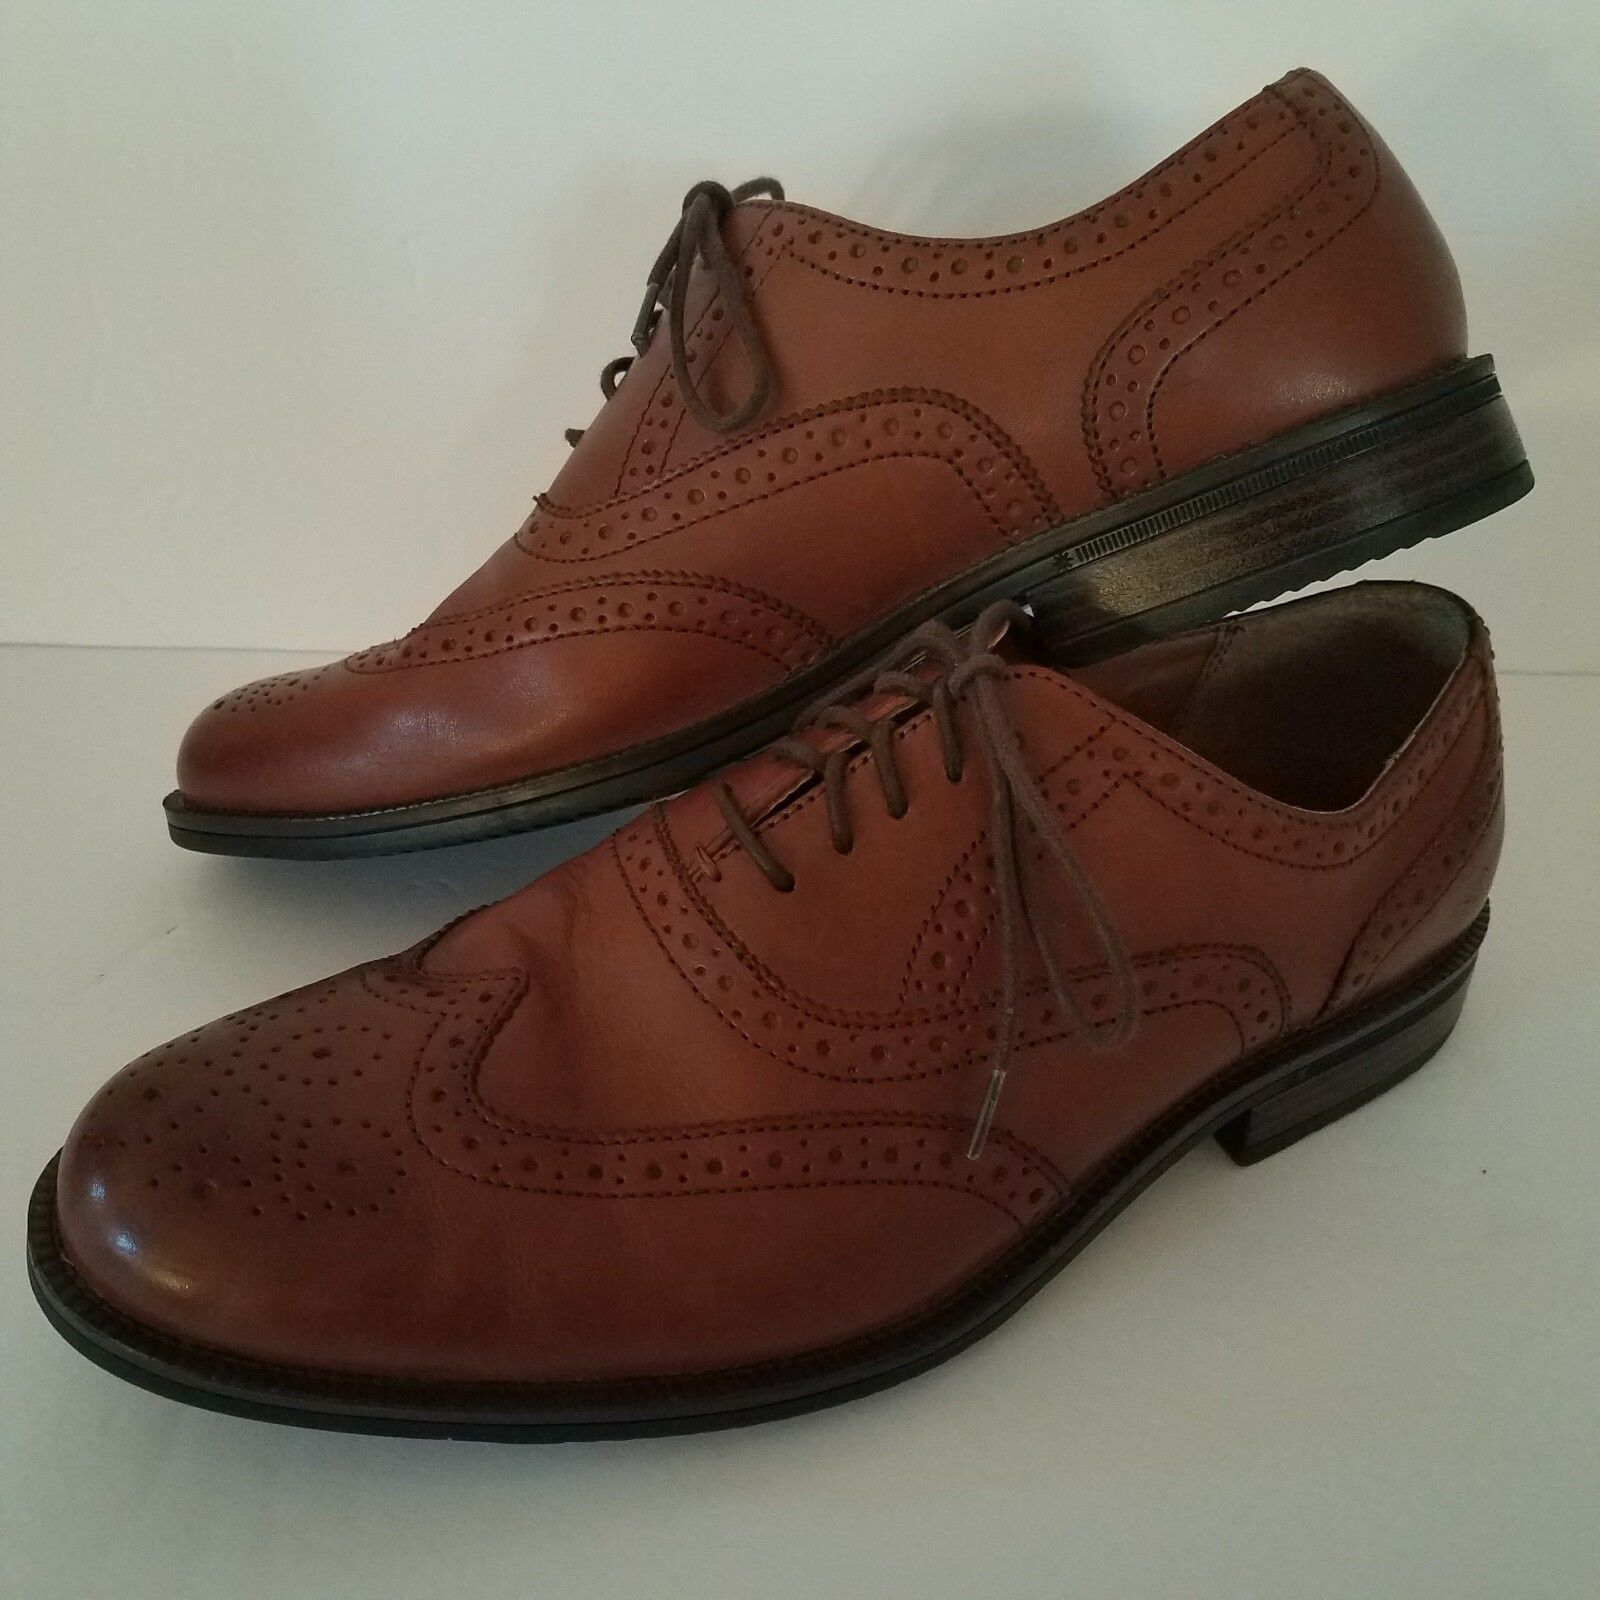 GH Bass And Co Nicholas 9M Wingtip shoes Brown Dress Oxfords Leather Uppers Mens